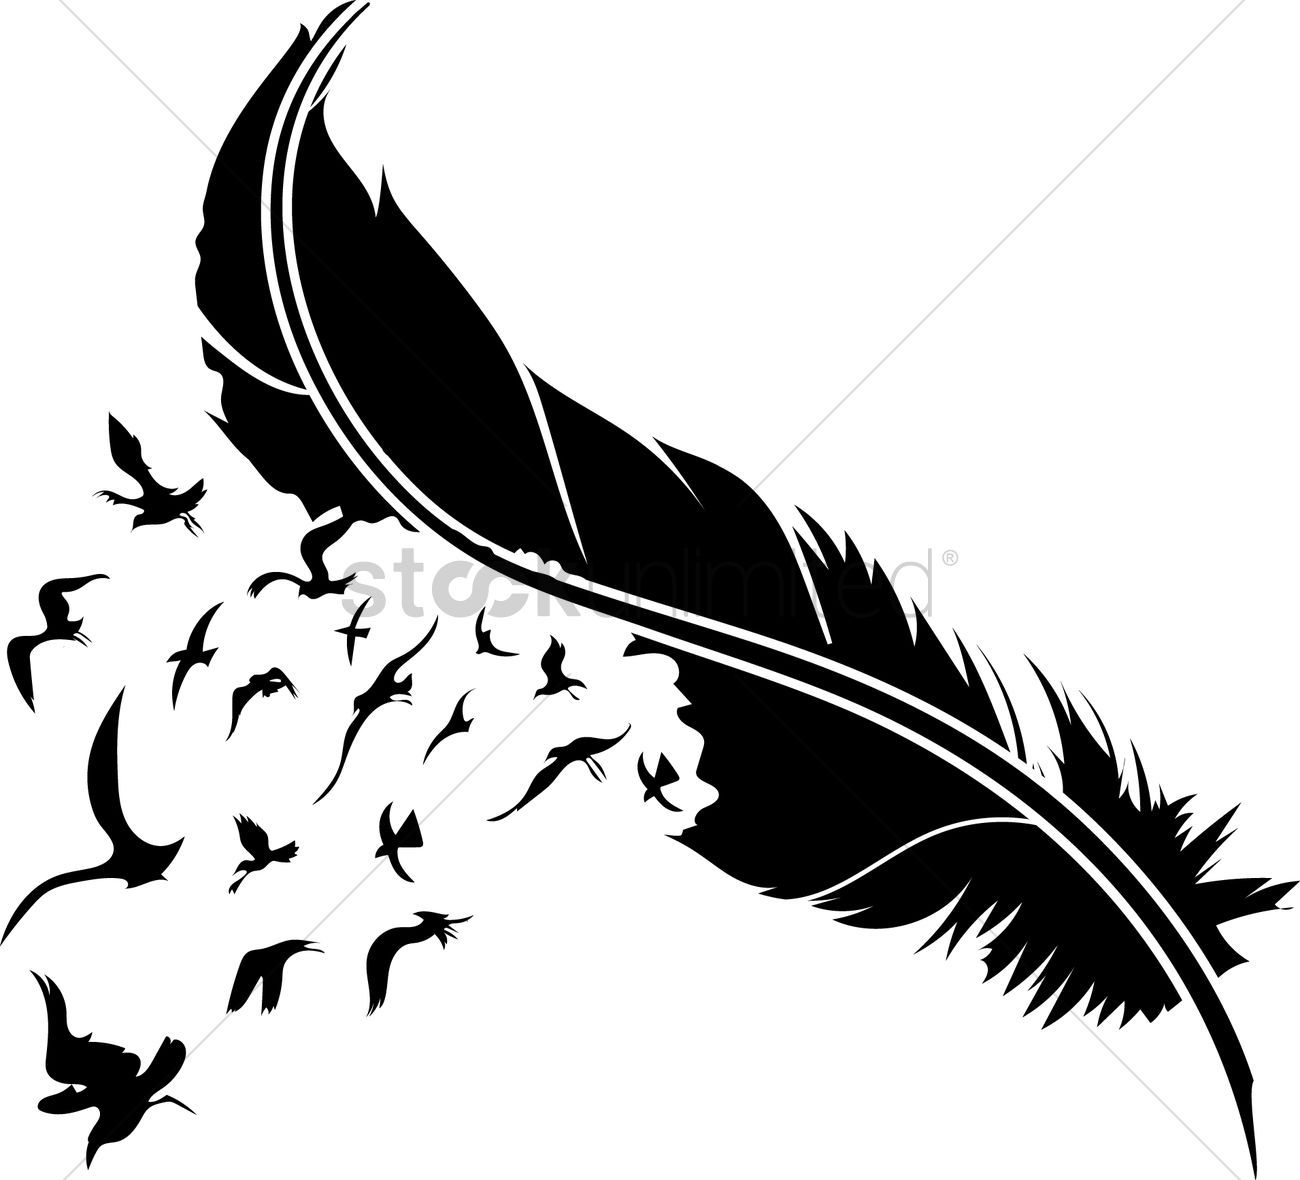 Feather with birds clipart 9 » Clipart Portal.